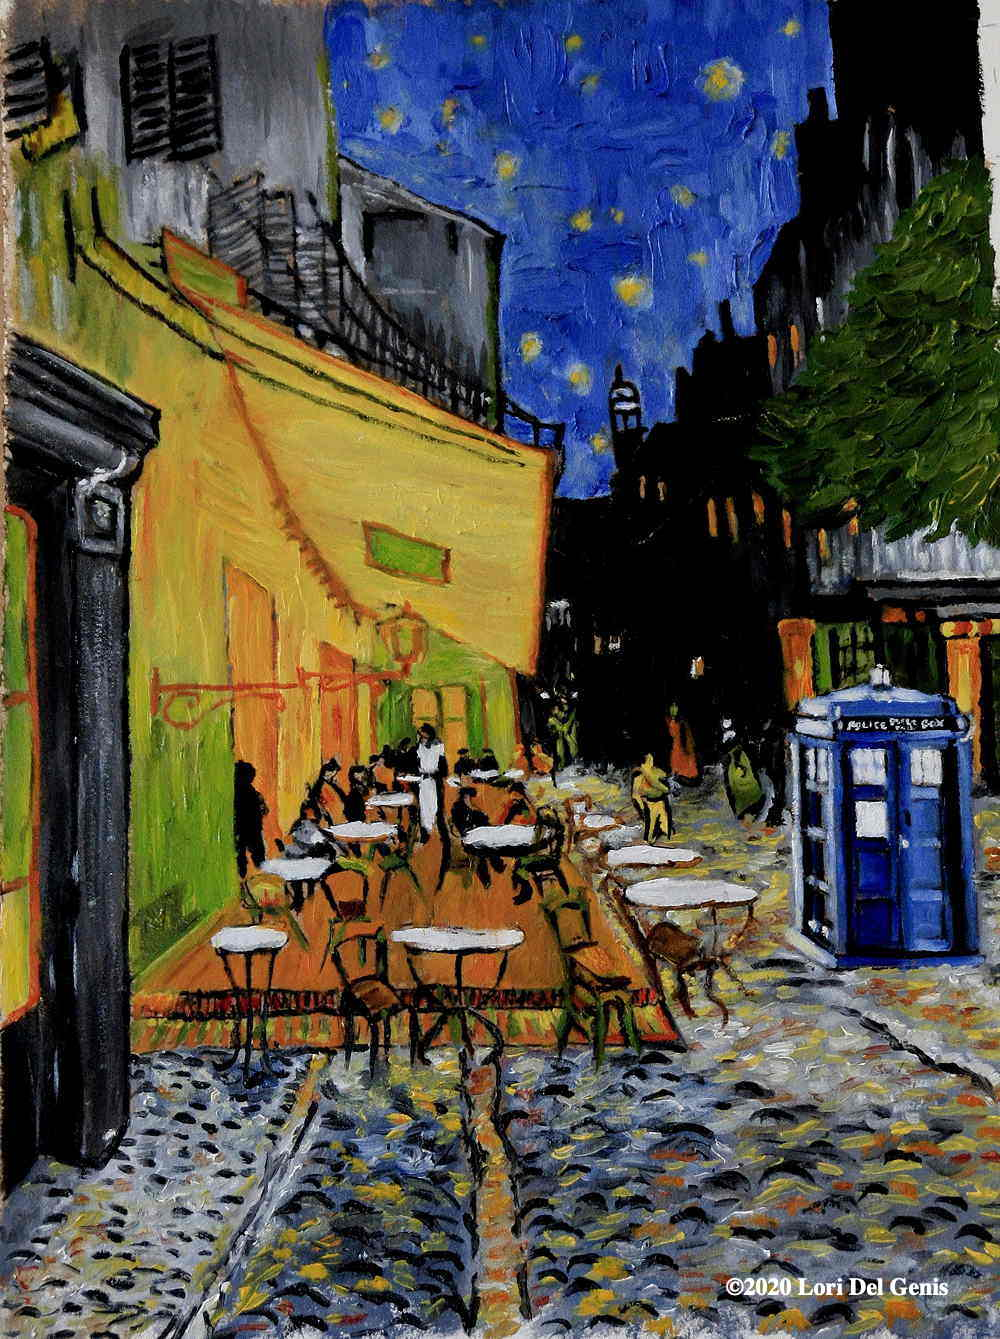 'Evening Sojourn' Wall art homage to Van Gogh's 'Café Terrace at Night'; a police box sits to the right. (Lori Del Genis, 2019)